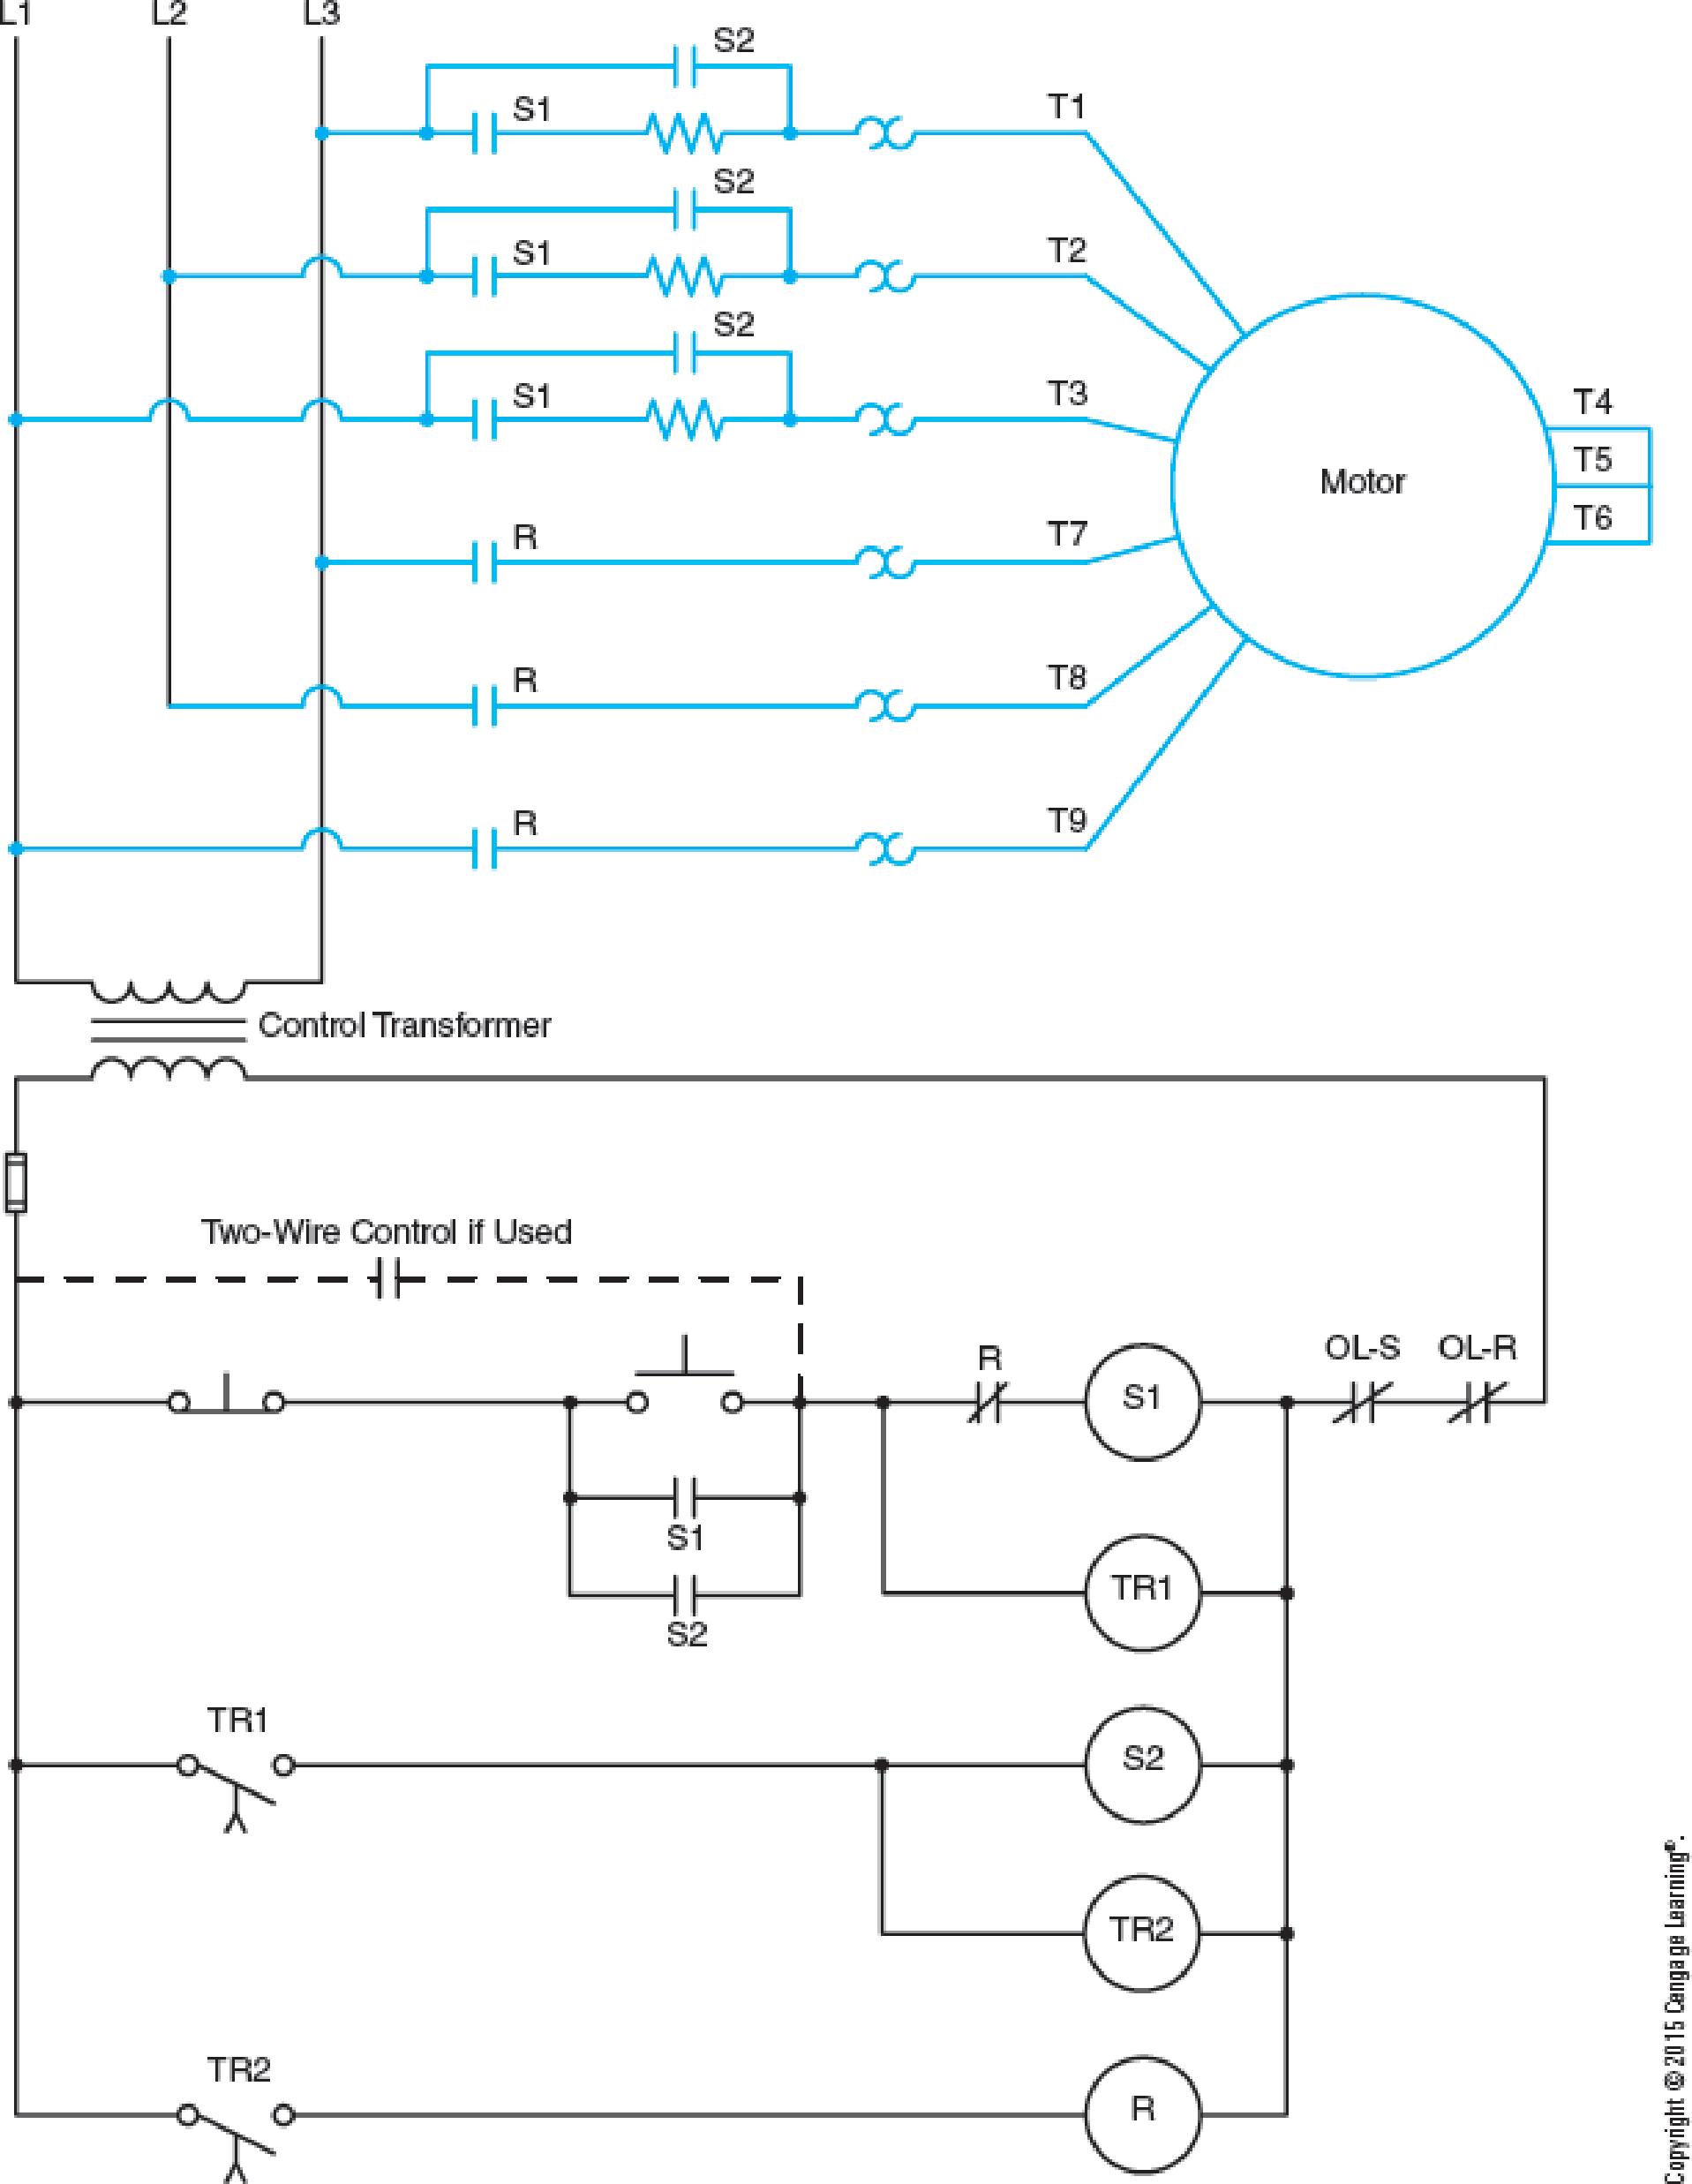 Chapter 28, Problem 8SQ, Refer to the circuit shown in Figure 284. When the start button is pressed, the motor does not start